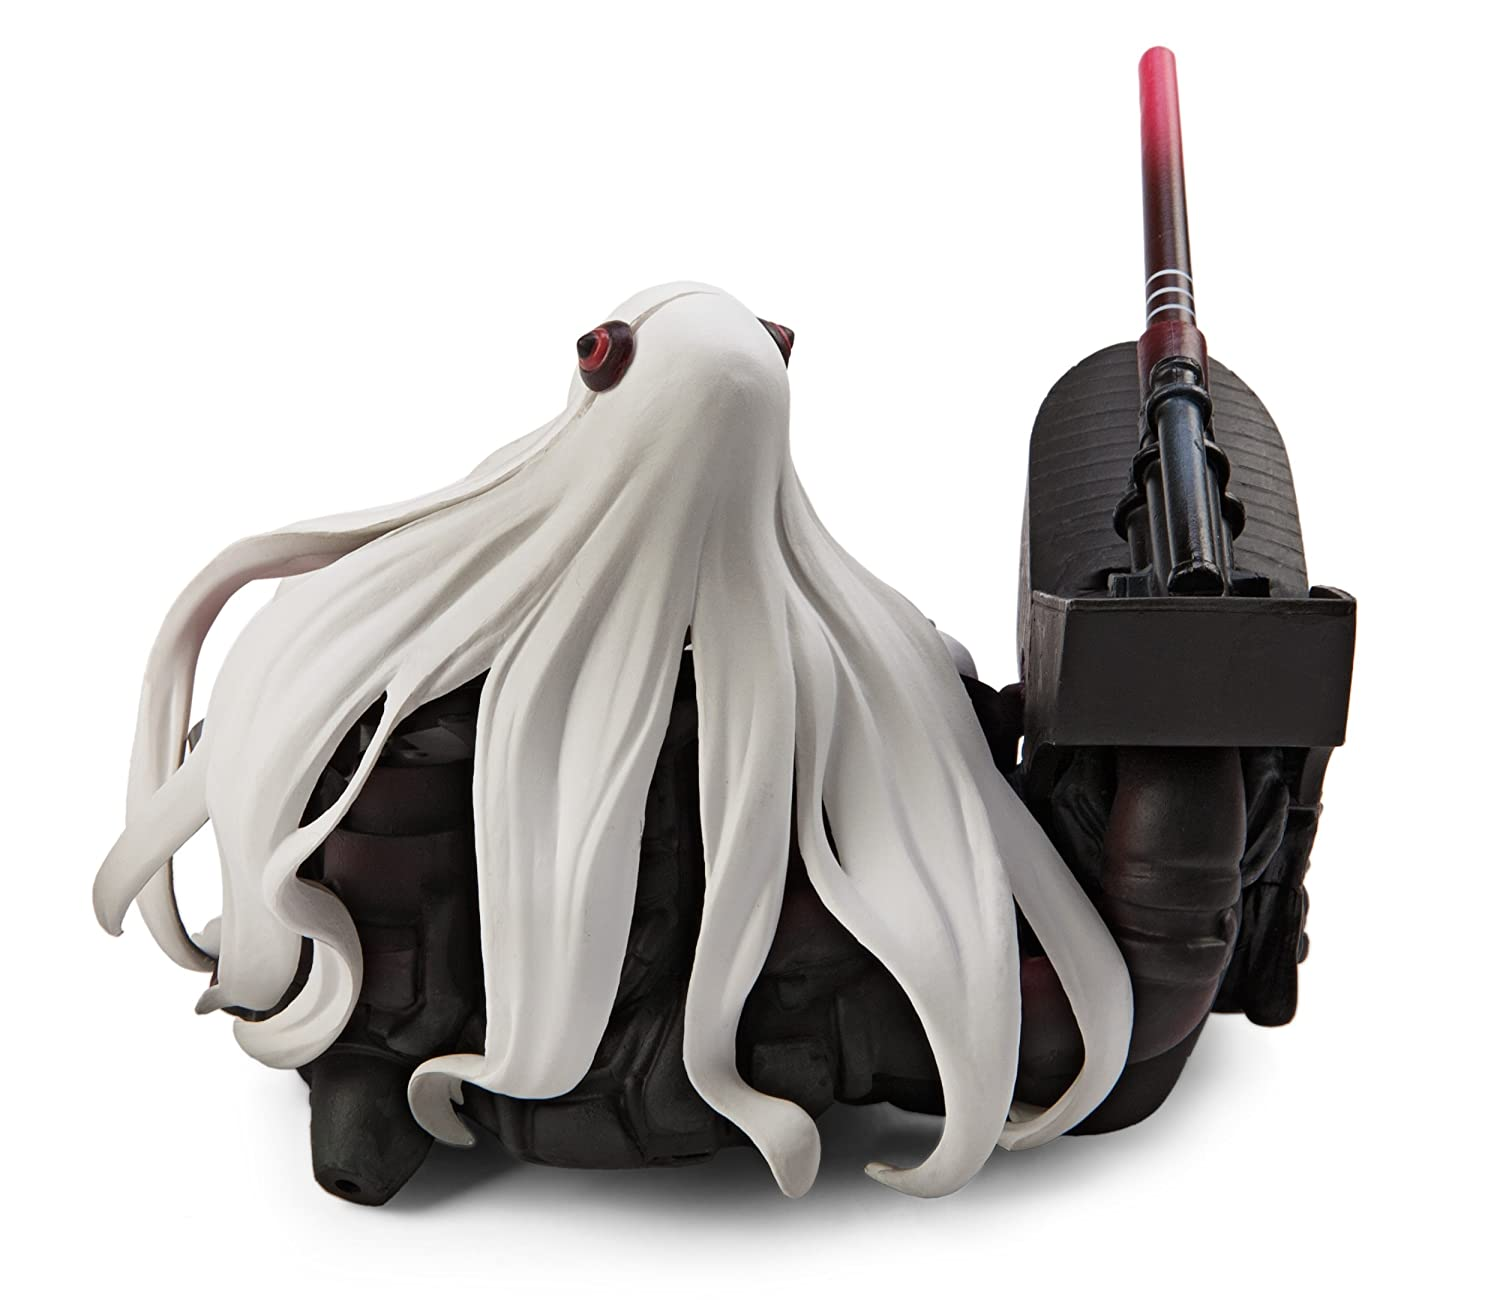 Furyu 6.3 Kantai Collection Kancolle Airfield Princess Abyssal Fleet Special Figure